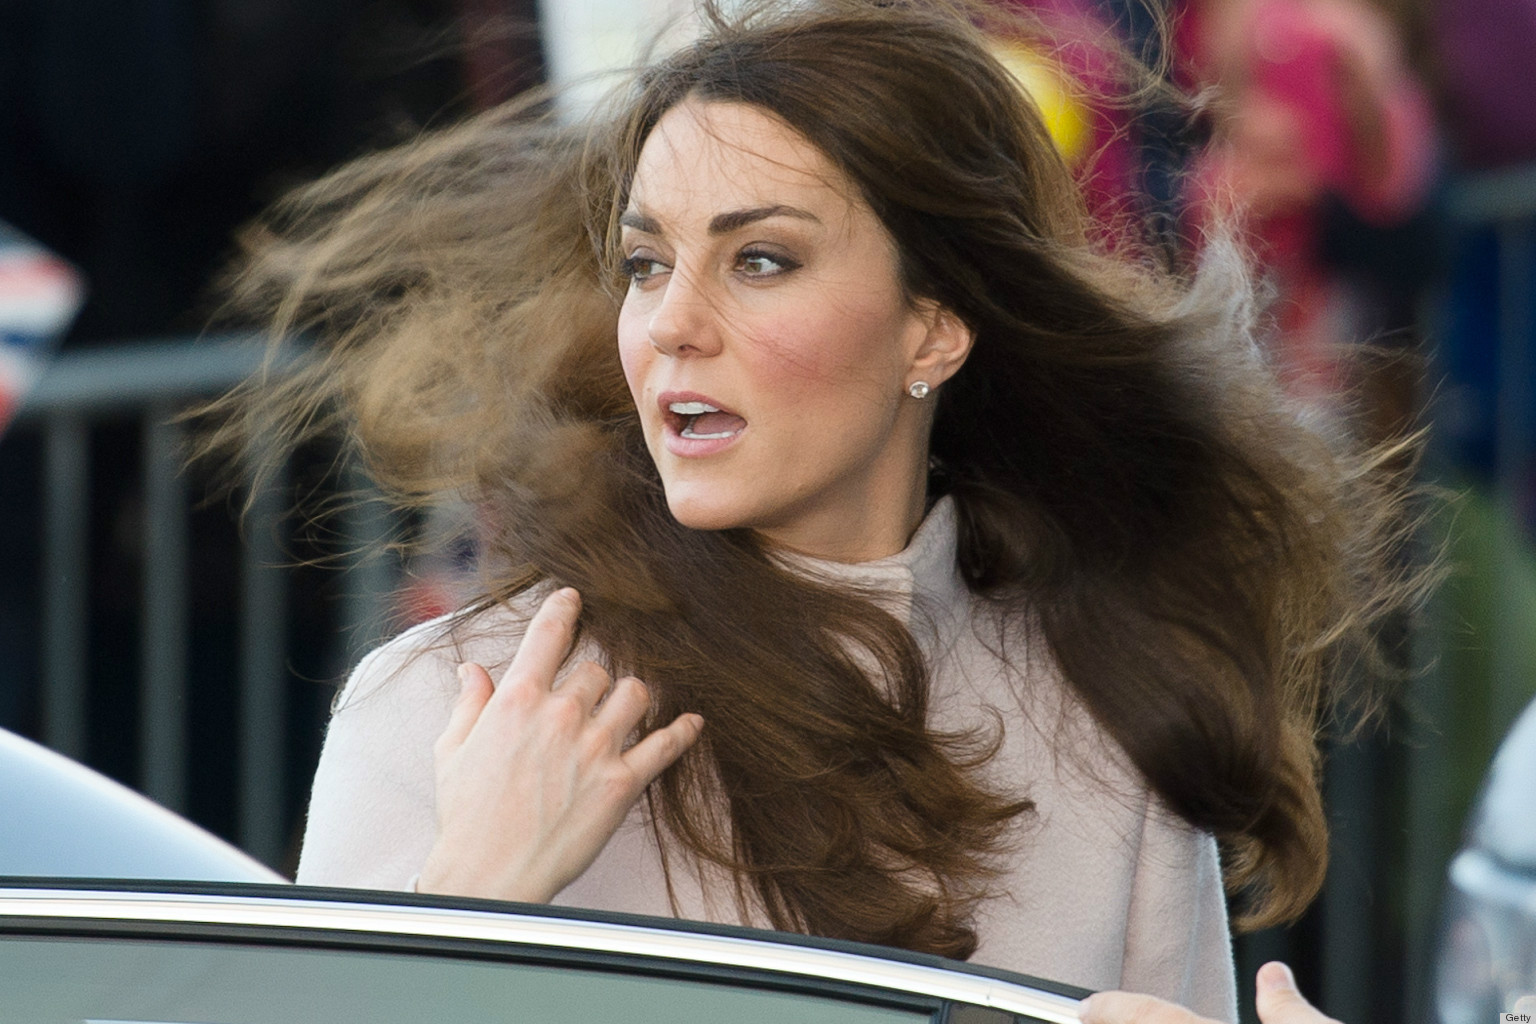 Kate Middleton almost has a 'Marilyn Monroe moment' on tour of India